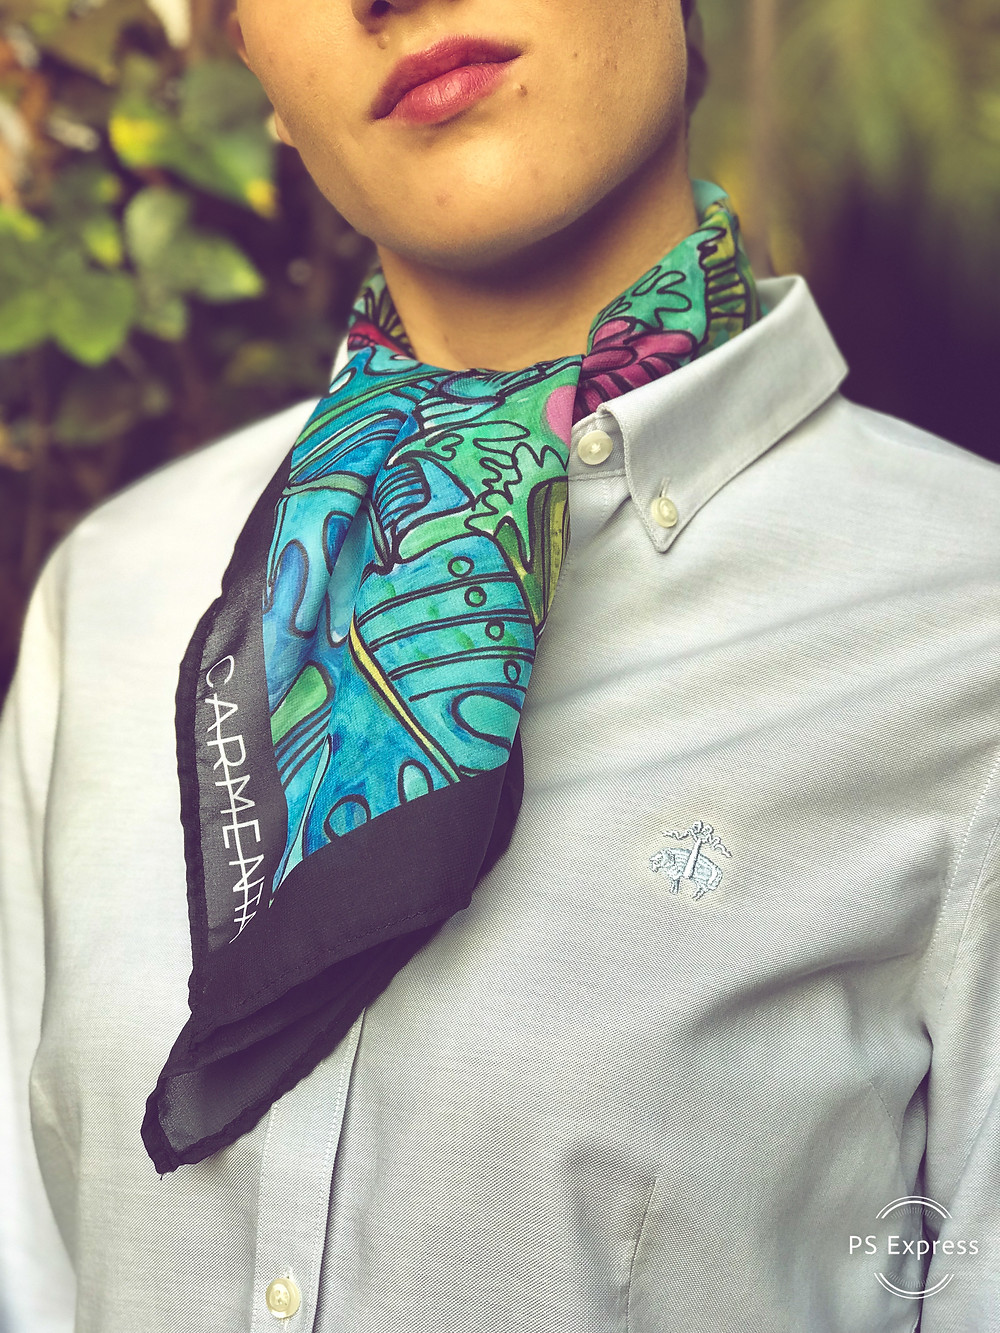 CARMENTA - model wearing scarf ascot knot tutorial, Costa Rica design and art printed on fabric